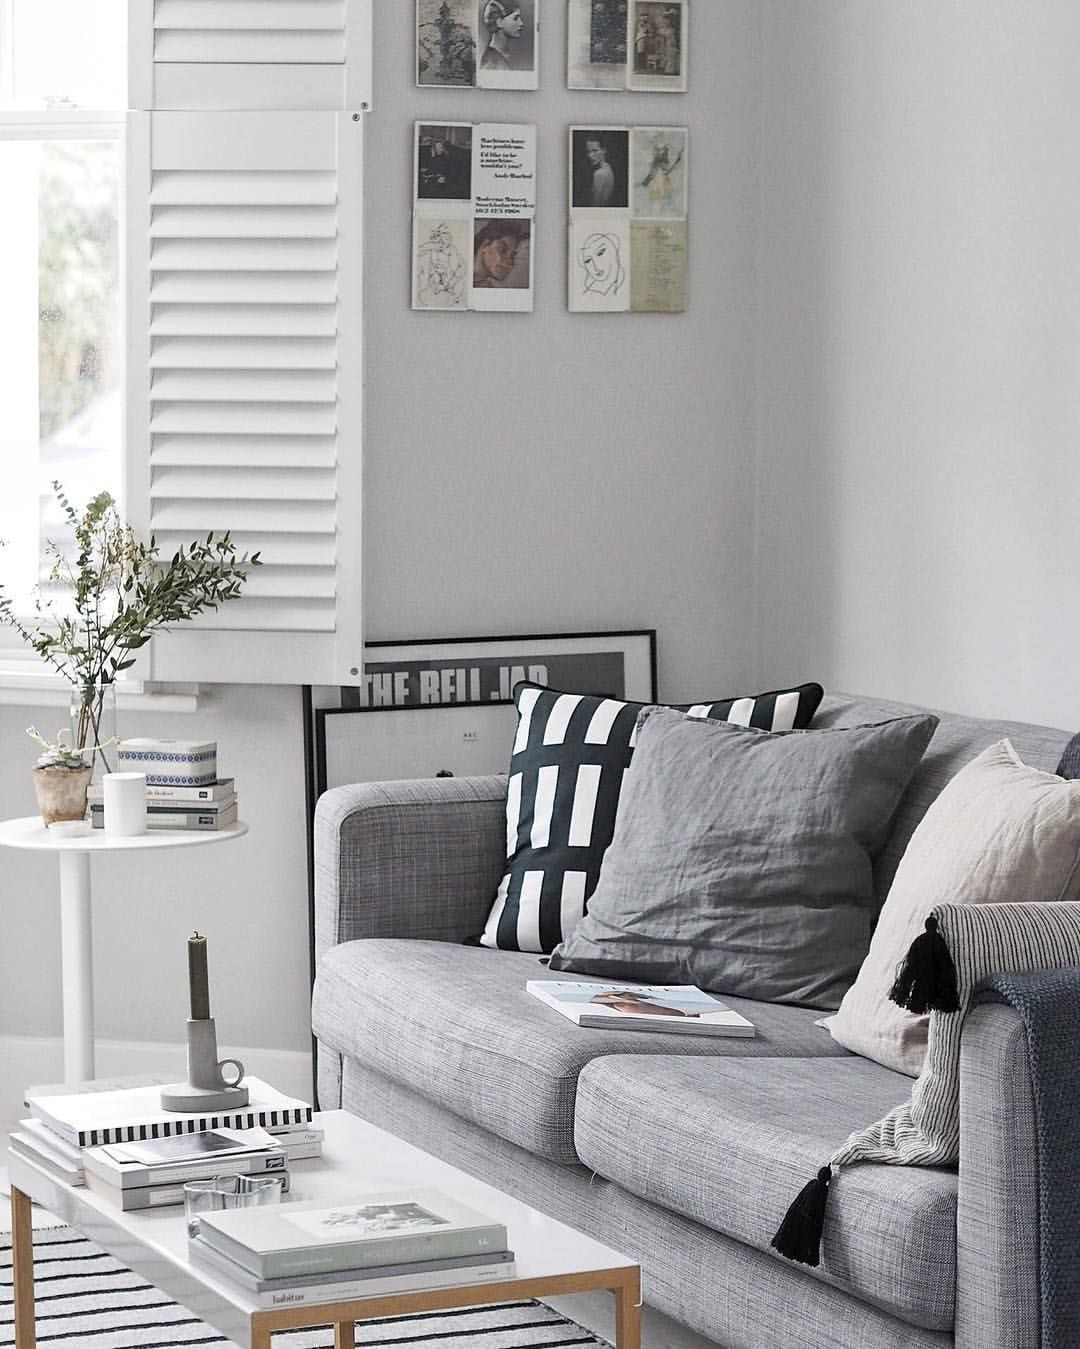 grey living room furniture%0A Light grey living room with grey IKEA sofa and monochrome accessories   minimal design and pared